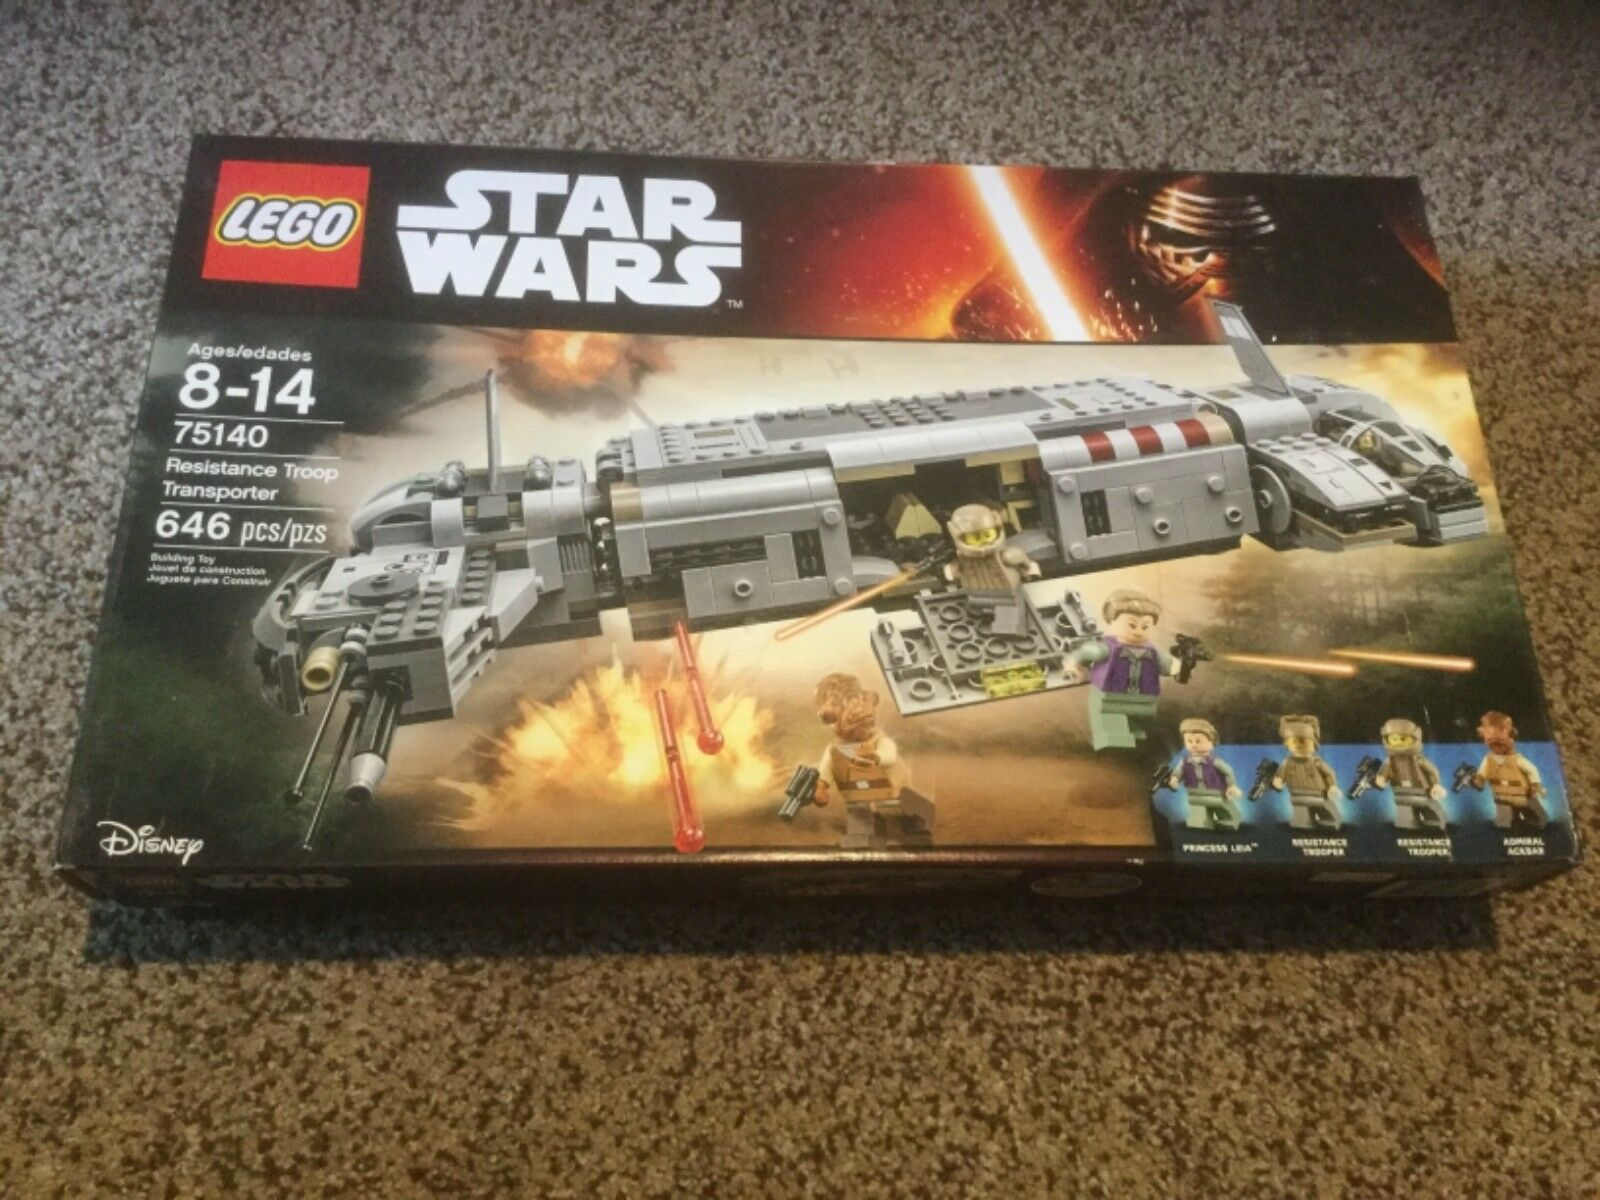 Nuovo in box Lego Star Wars Resistance Troop Transporter 75140